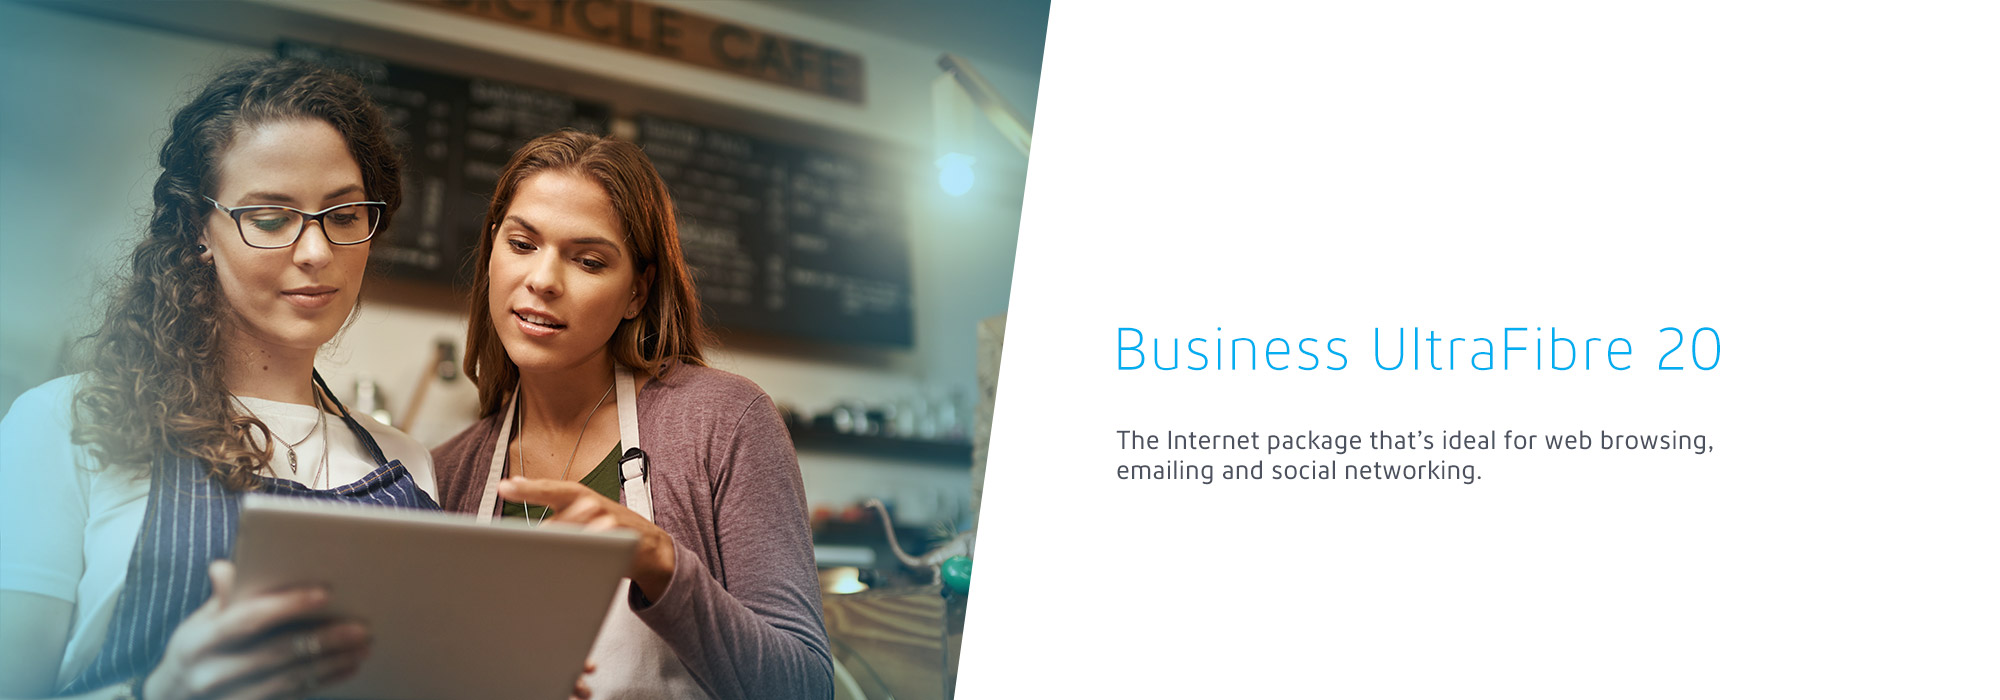 Business UltraFibre 20, Cogeco Business Internet package